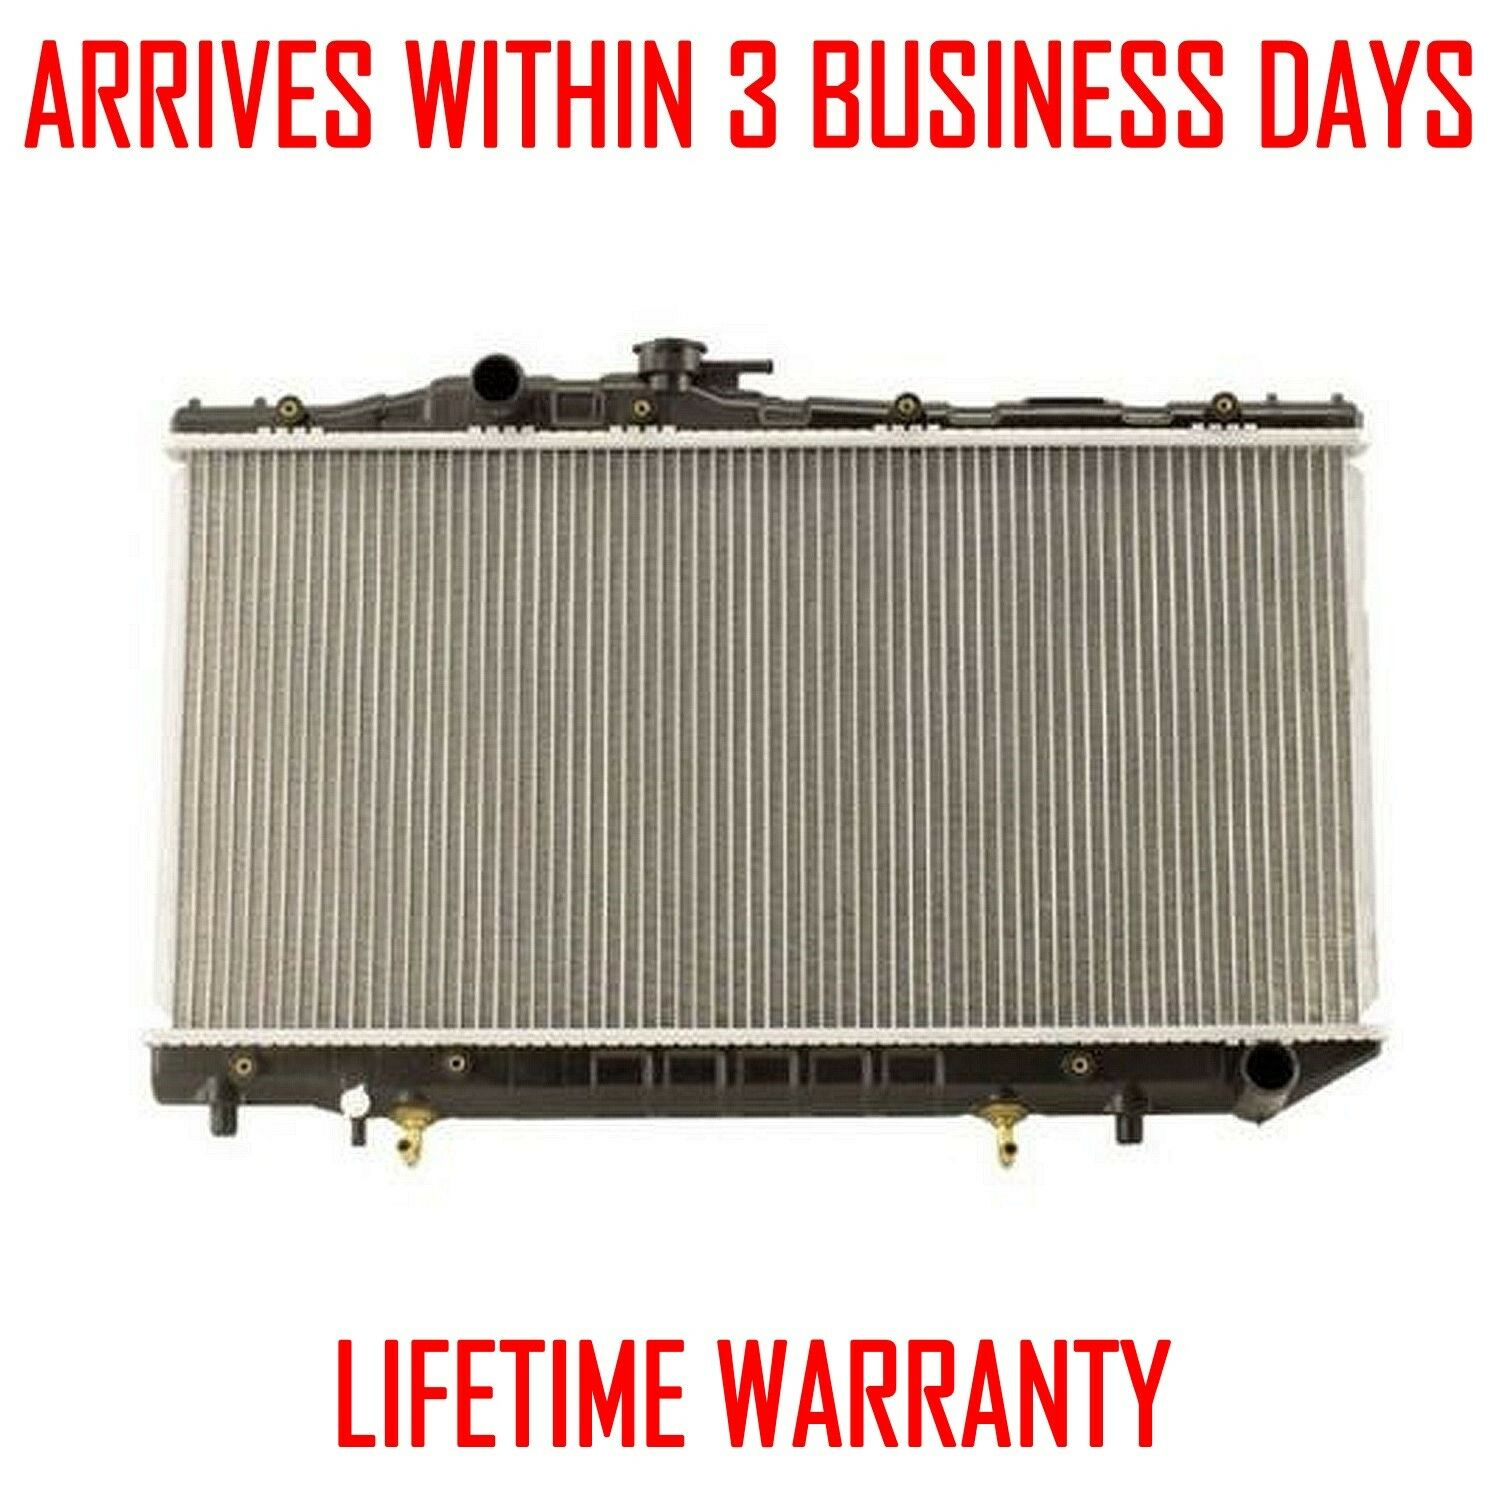 1738 New Radiator For Volvo 960 92-97 S90 V90 97-98 2.9 L6 Lifetime Warranty